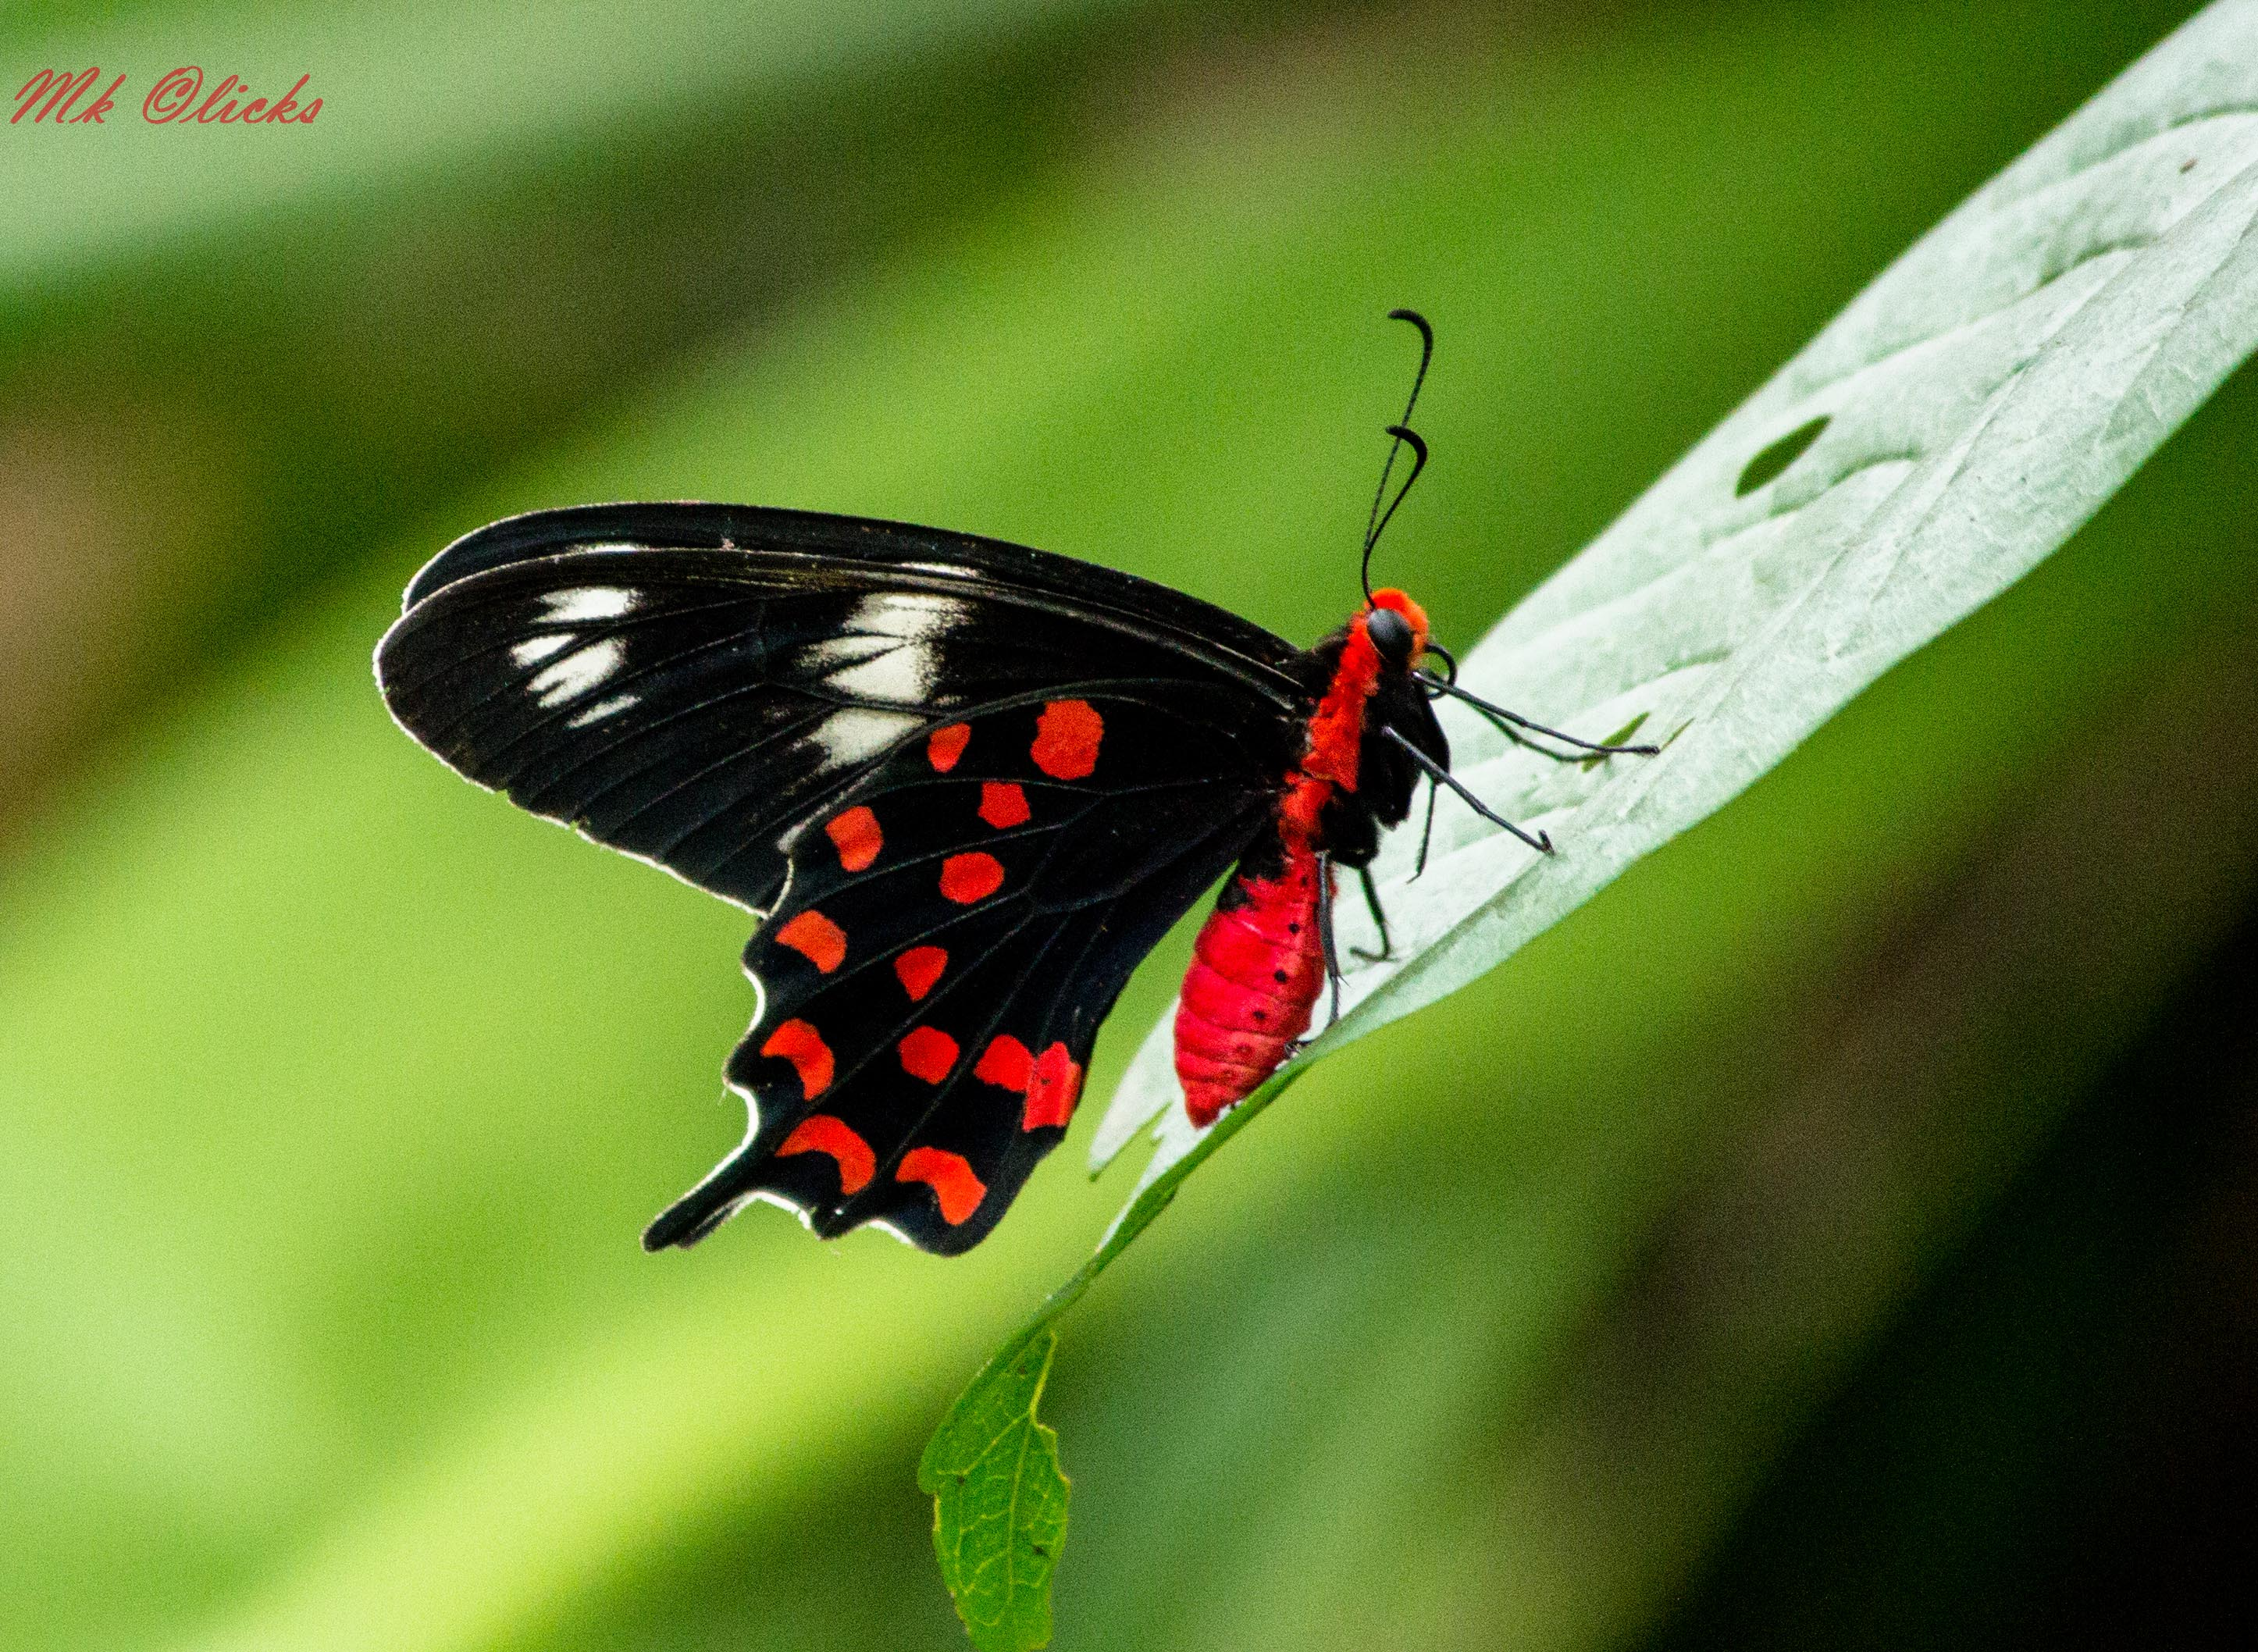 Roter Schmetterling File:black Red Butterfly.jpg - Wikimedia Commons